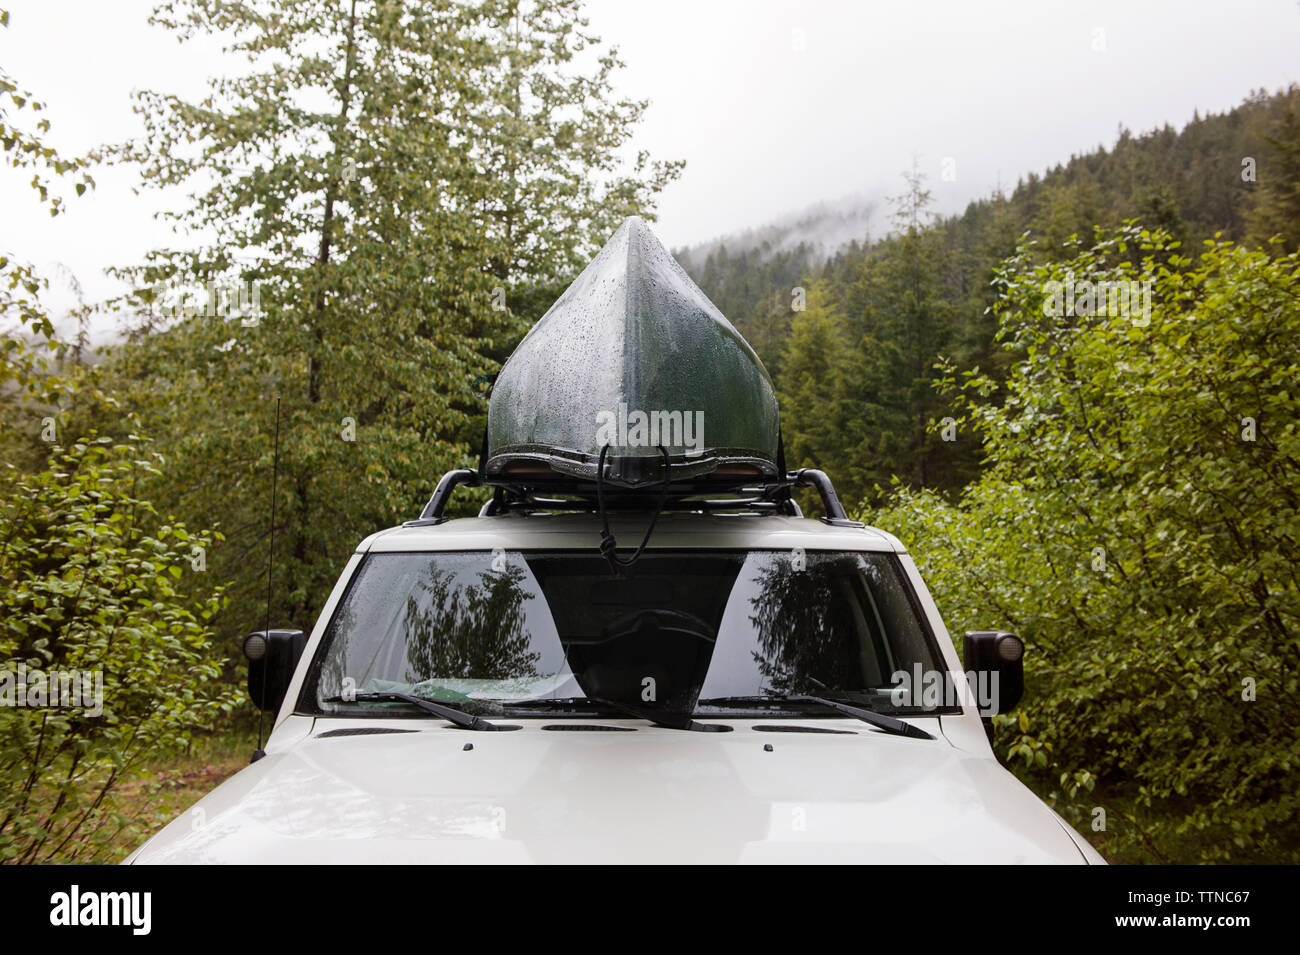 Canoe Car Roof Stock Photos & Canoe Car Roof Stock Images - Alamy